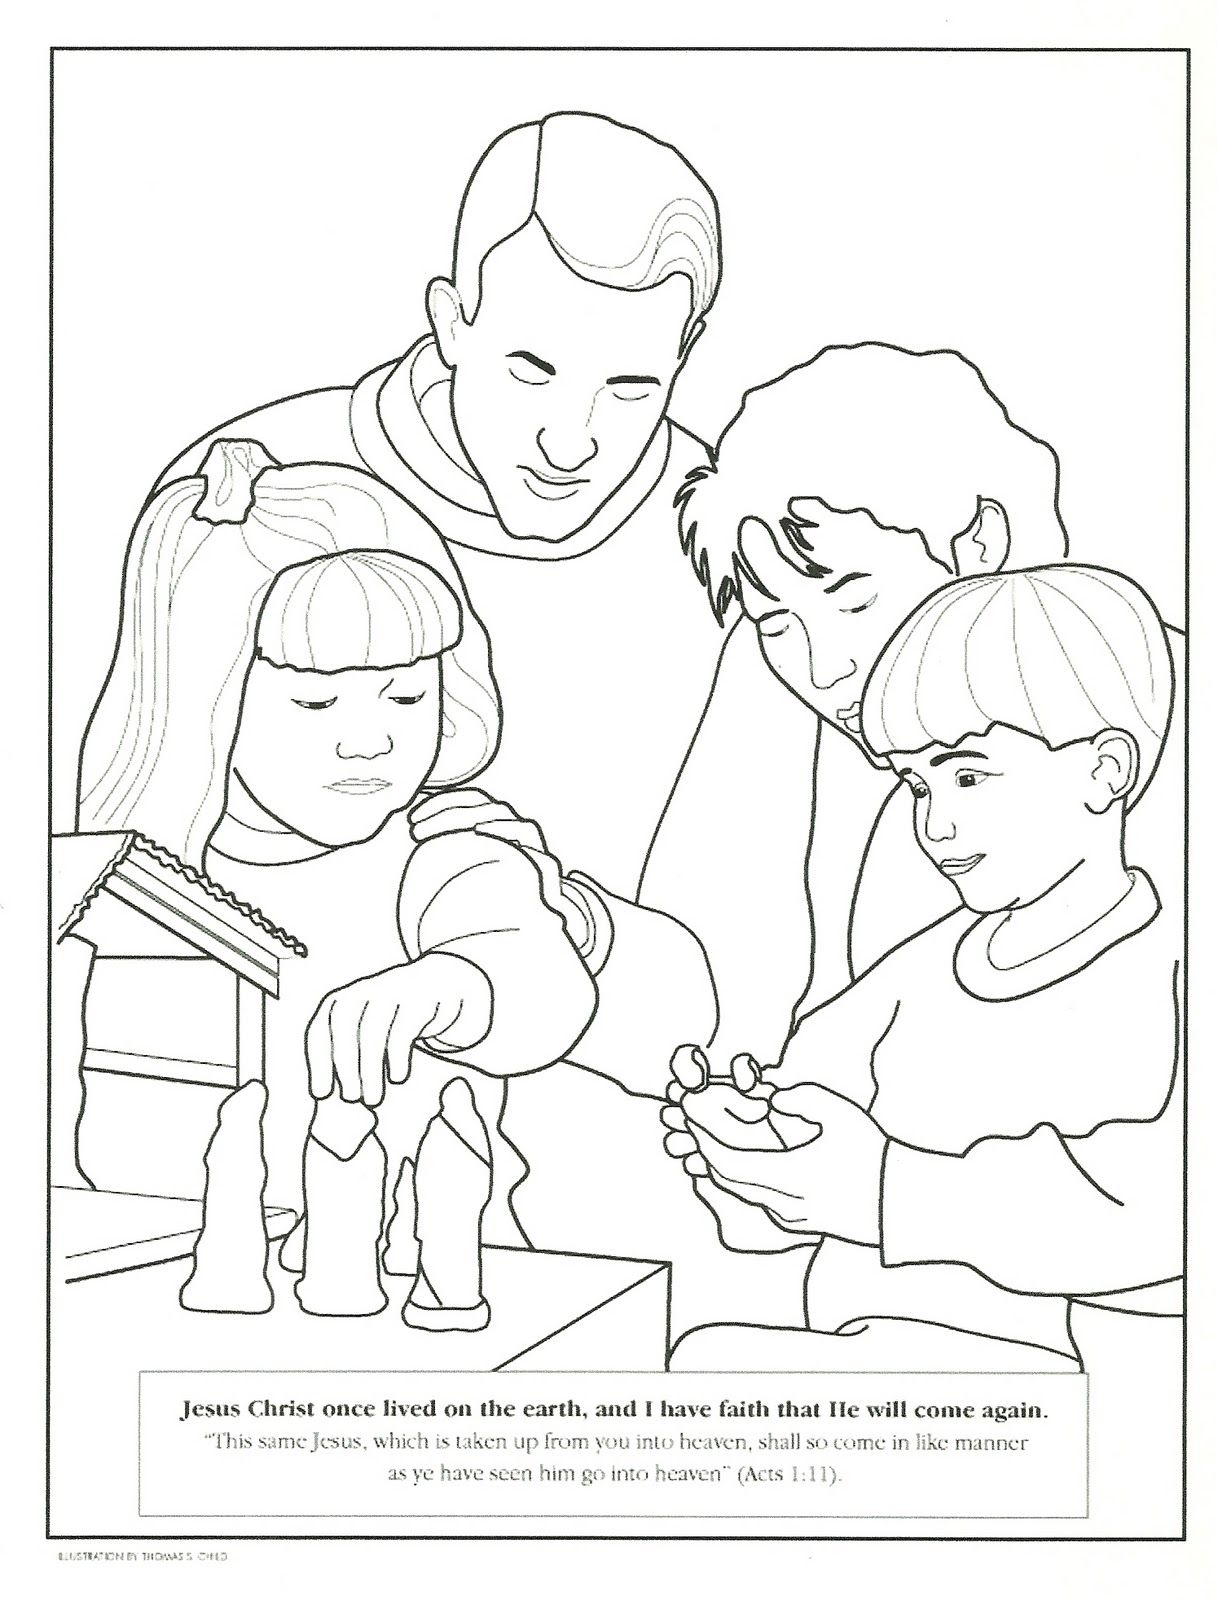 Several Lds Coloring Pages Lds Coloring Pages Nativity Coloring